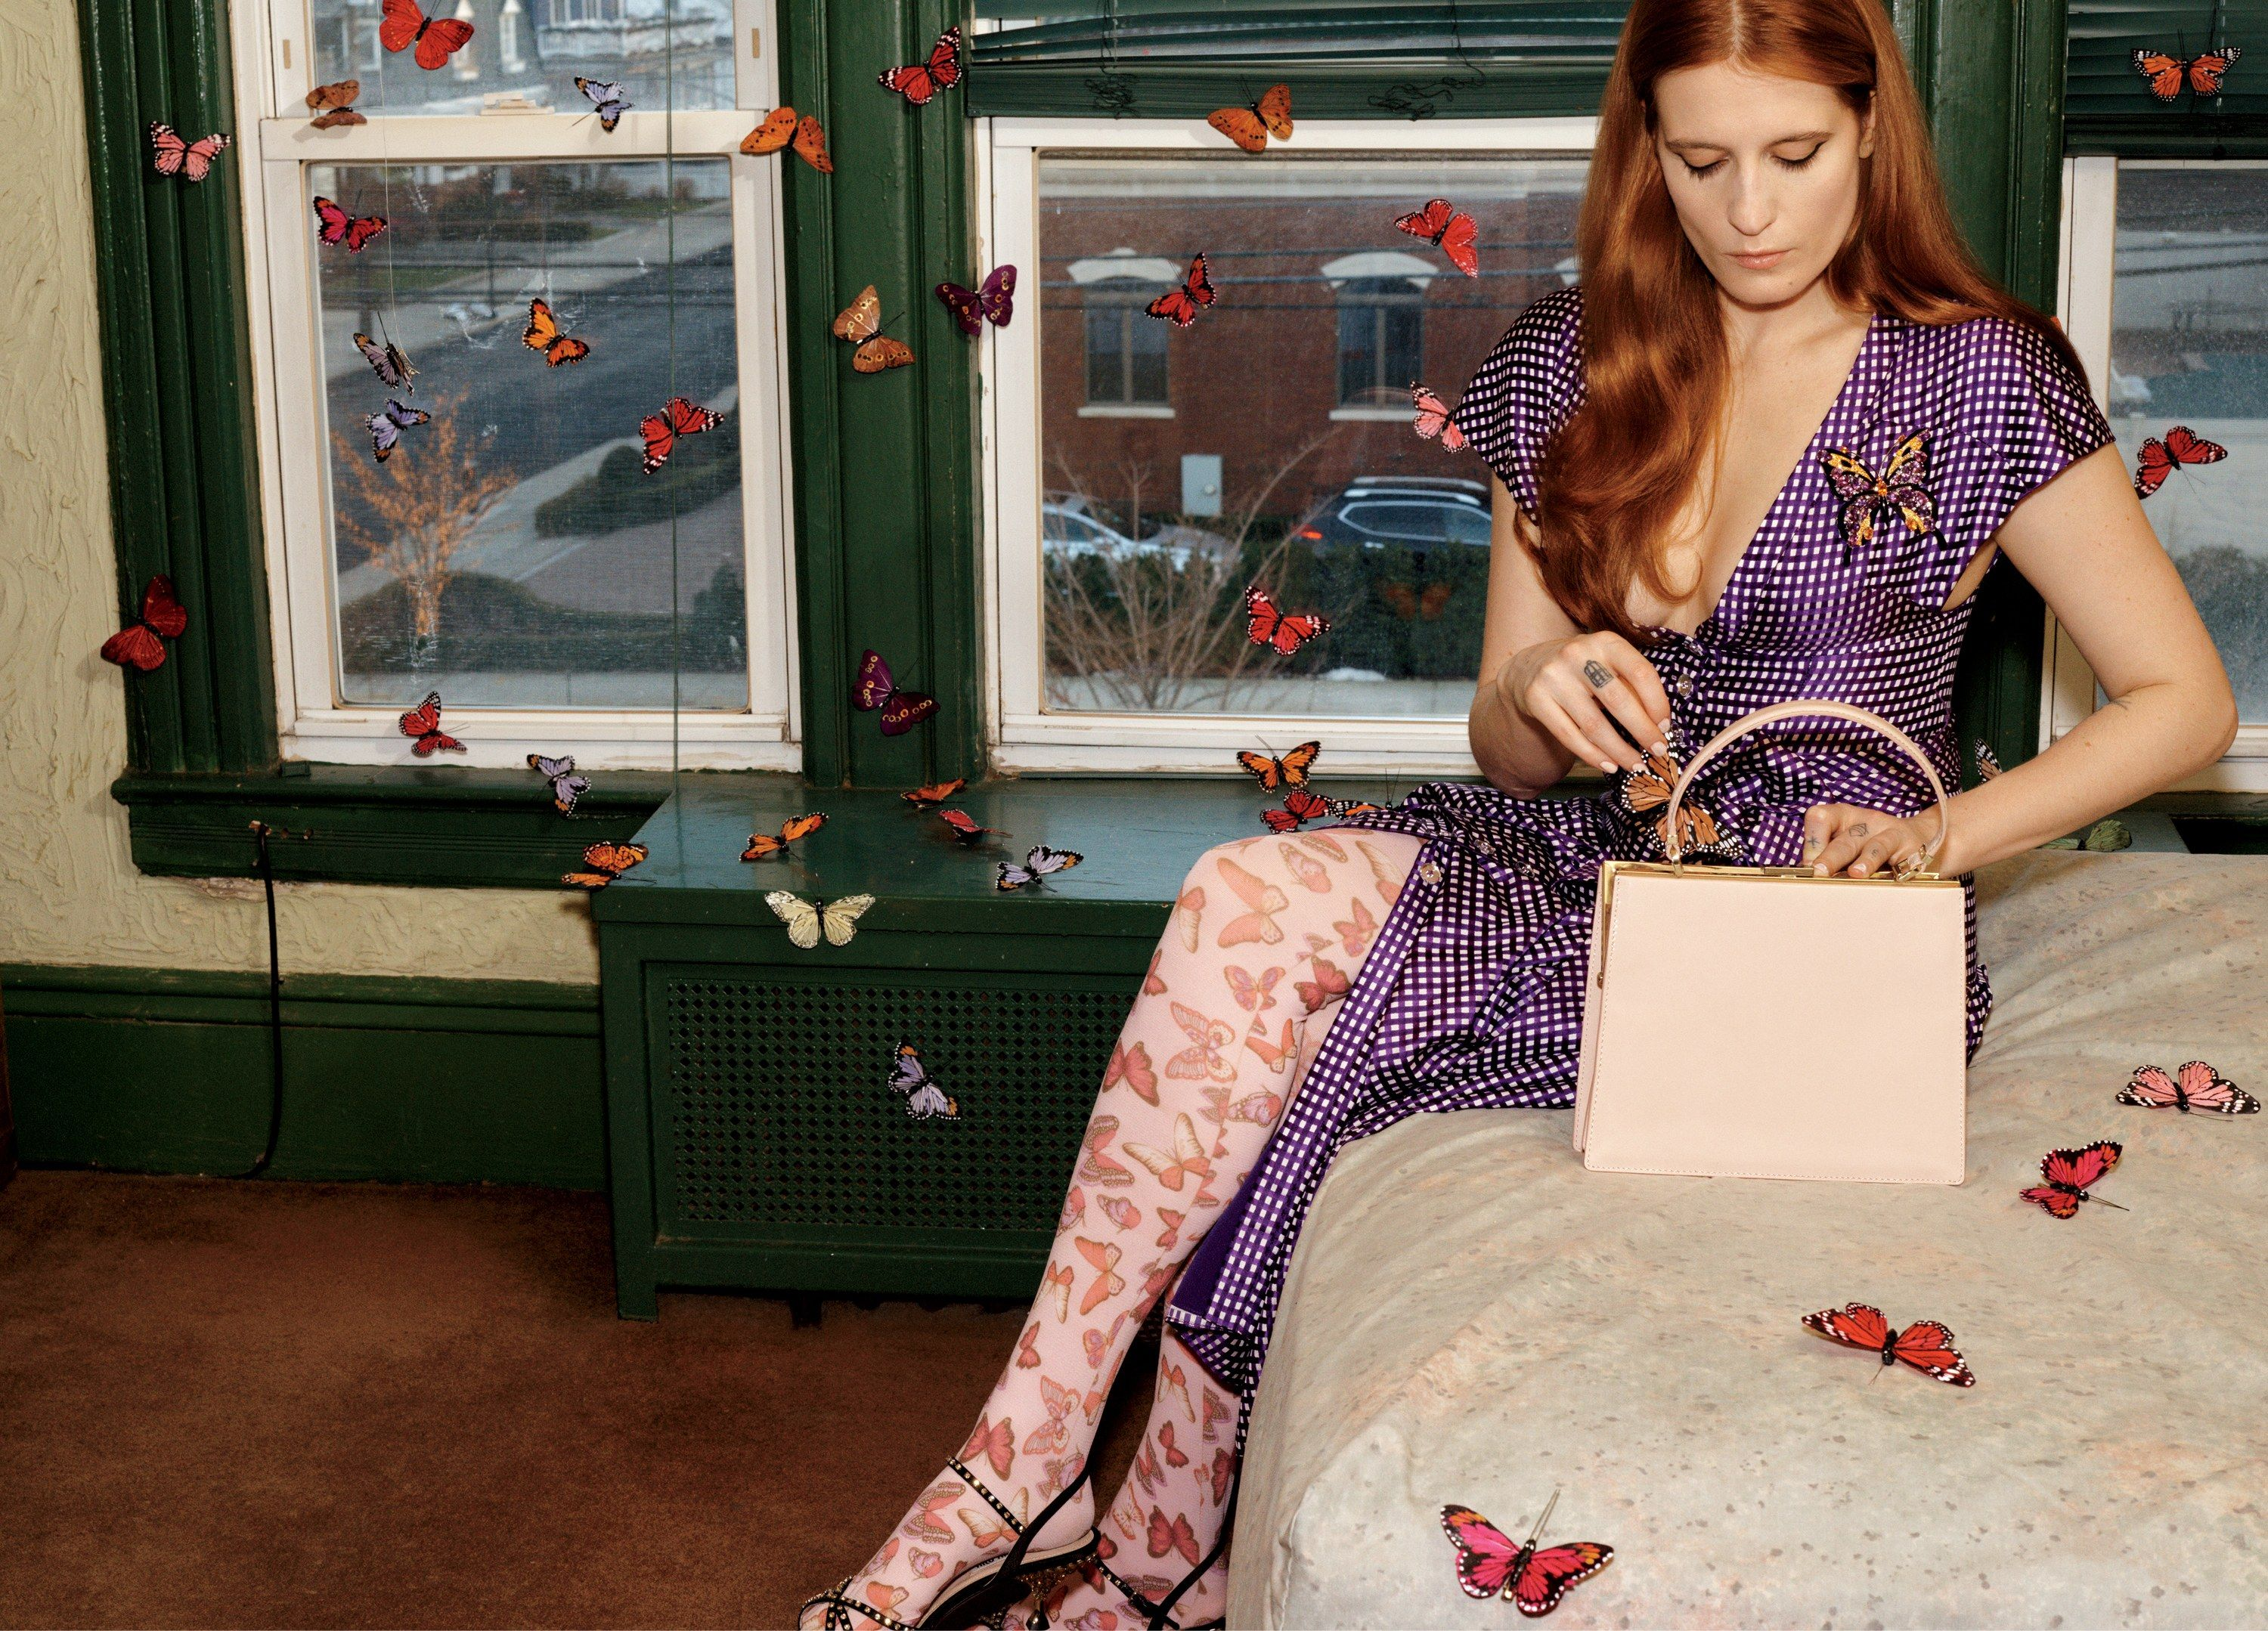 Fashion week From makeover: drummer to model of gucci for woman